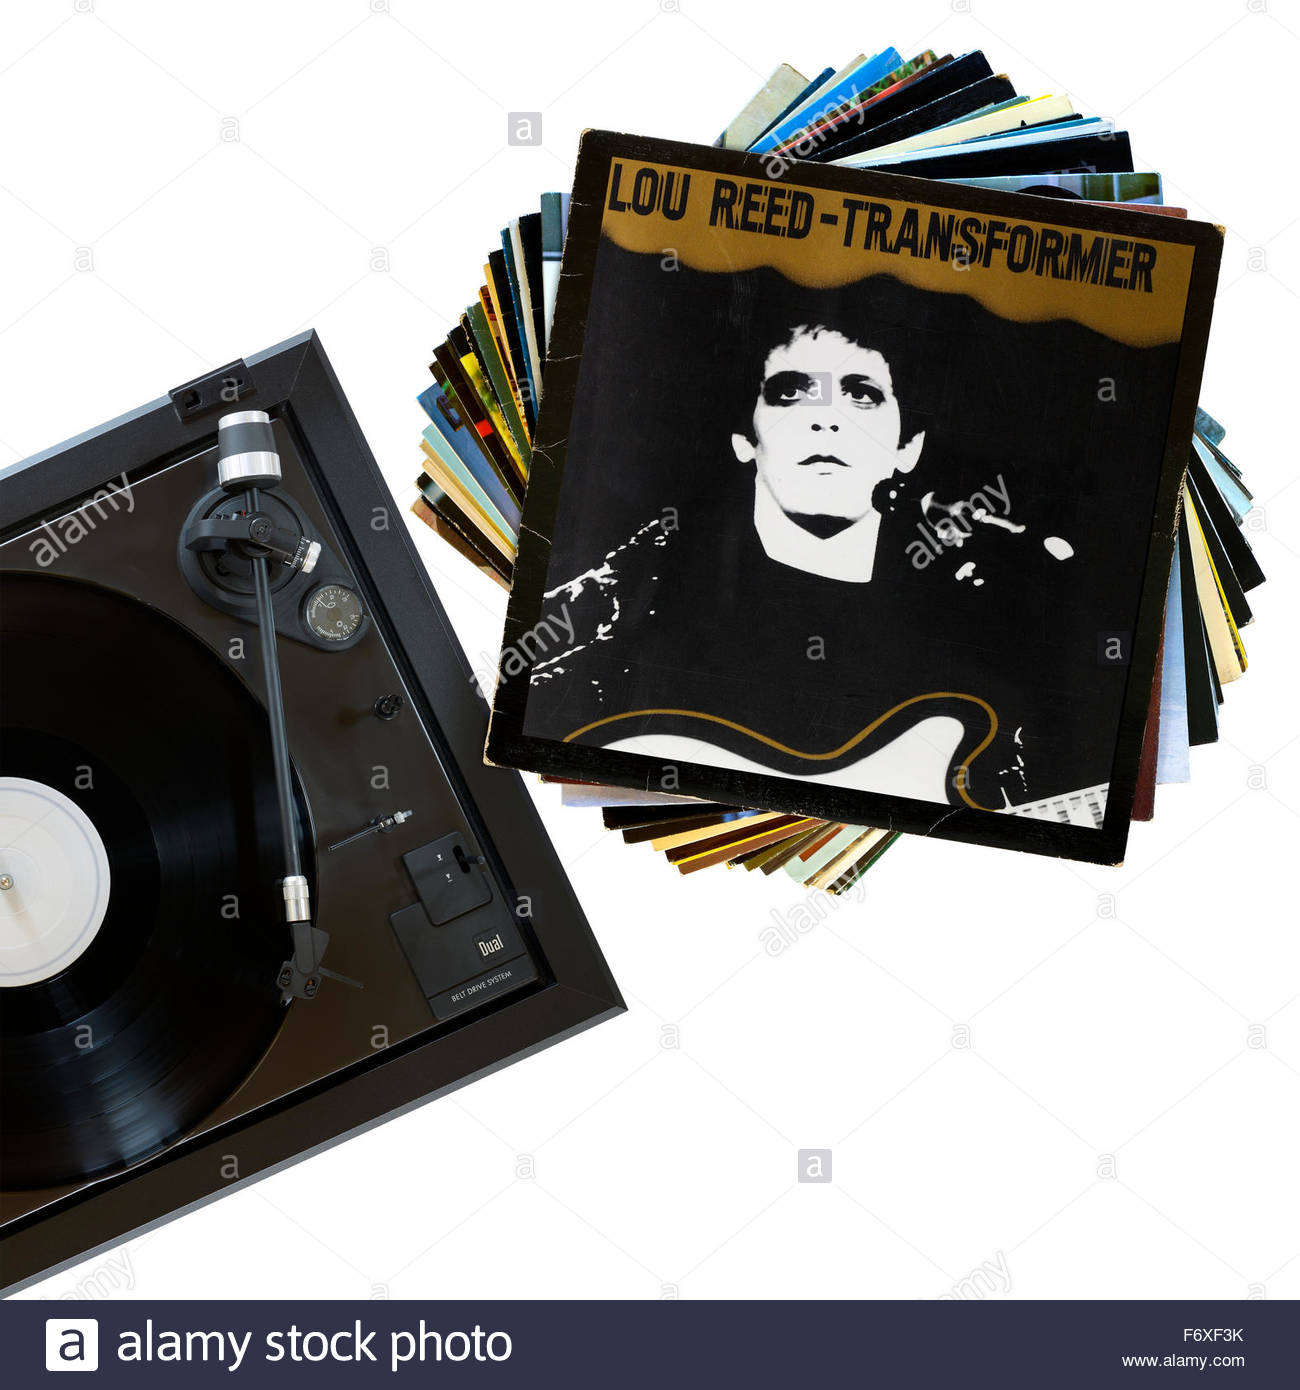 Lou Reed 1972 Album Transformer, record player and album